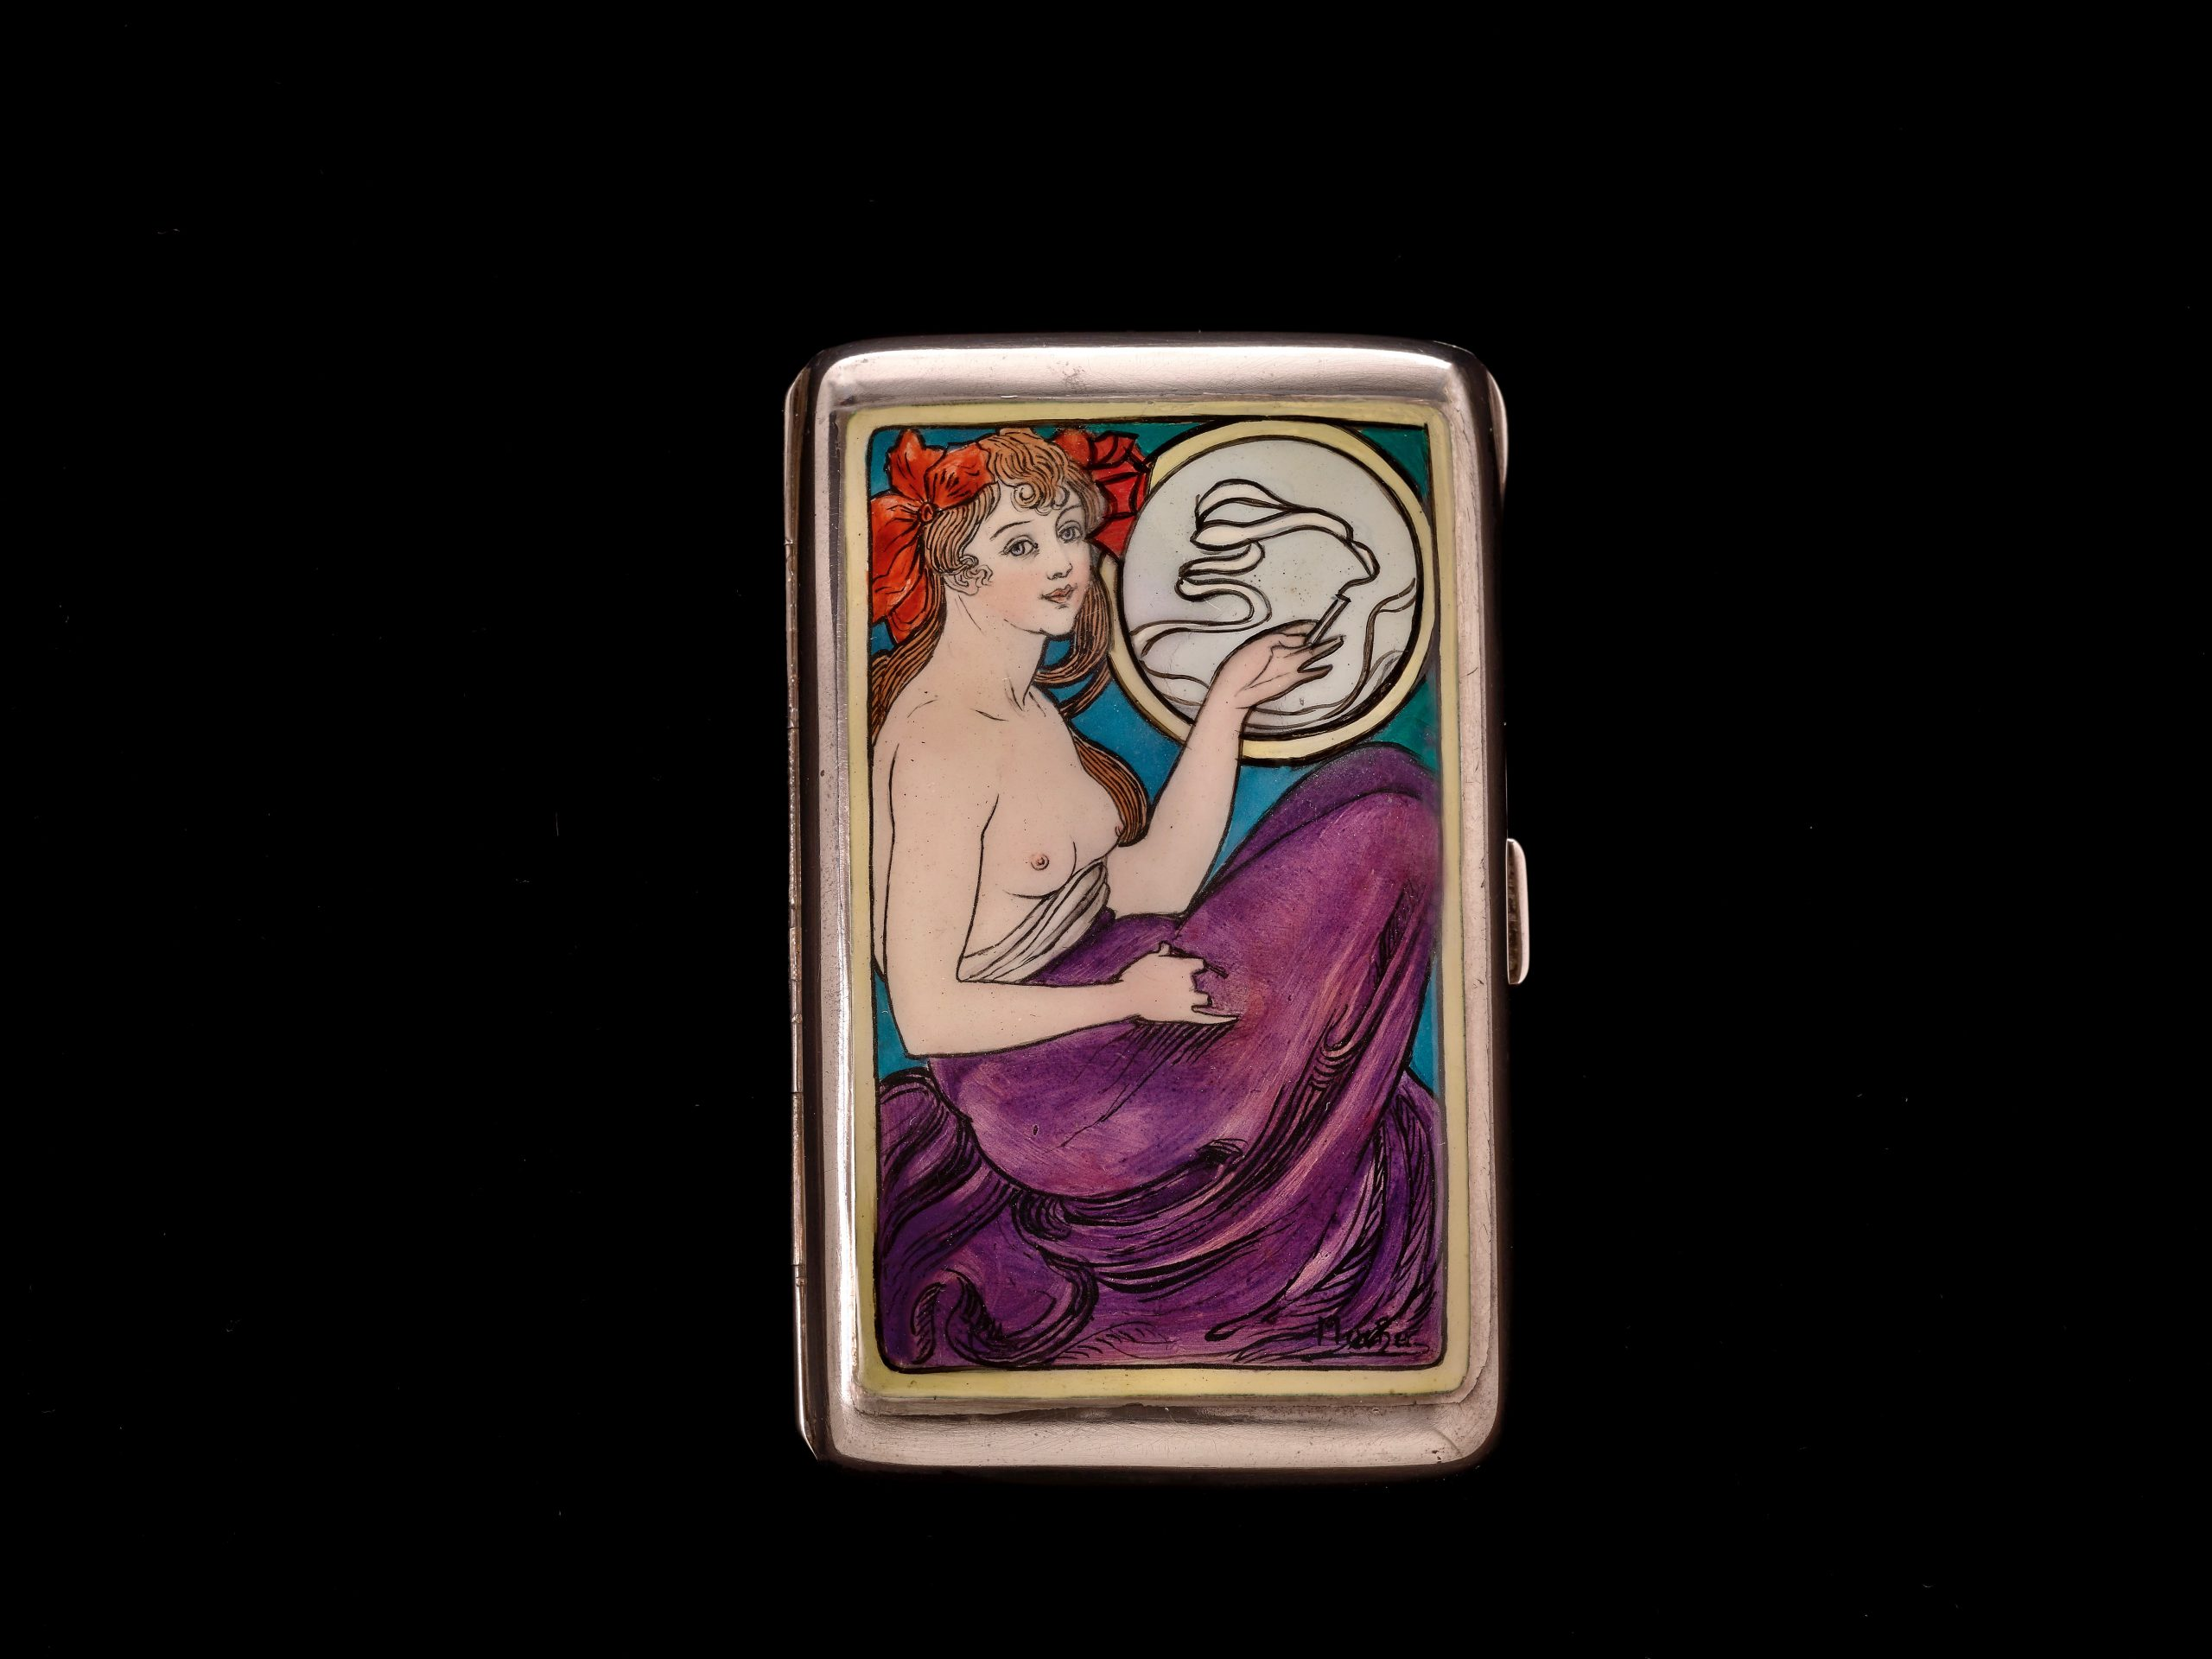 Czech artist Alphonse Mucha was known for epic paintings and florid Art Nouveau posters. He also felt that the muse on a silver cigarette case should have a ciggie of her own. (photo: John Faier, © The Richard H. Driehaus Museum)